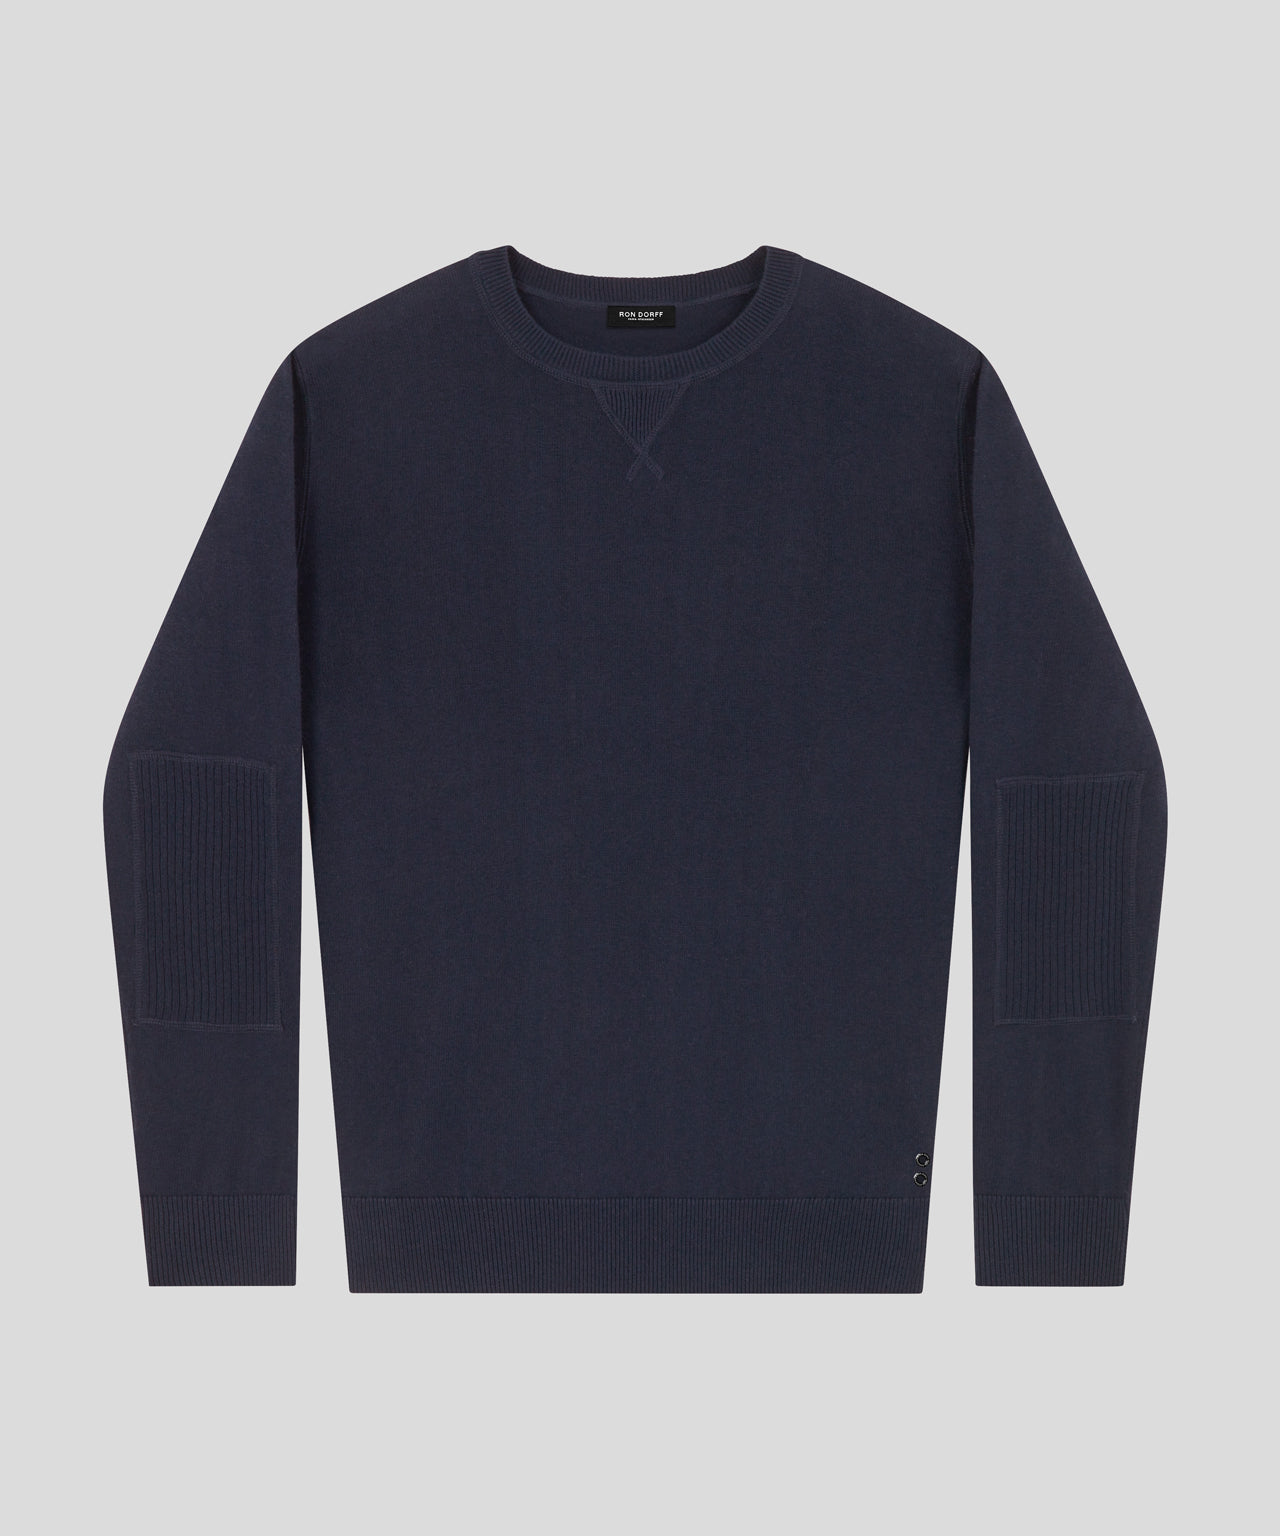 Cotton Cashmere Army Pullover - navy